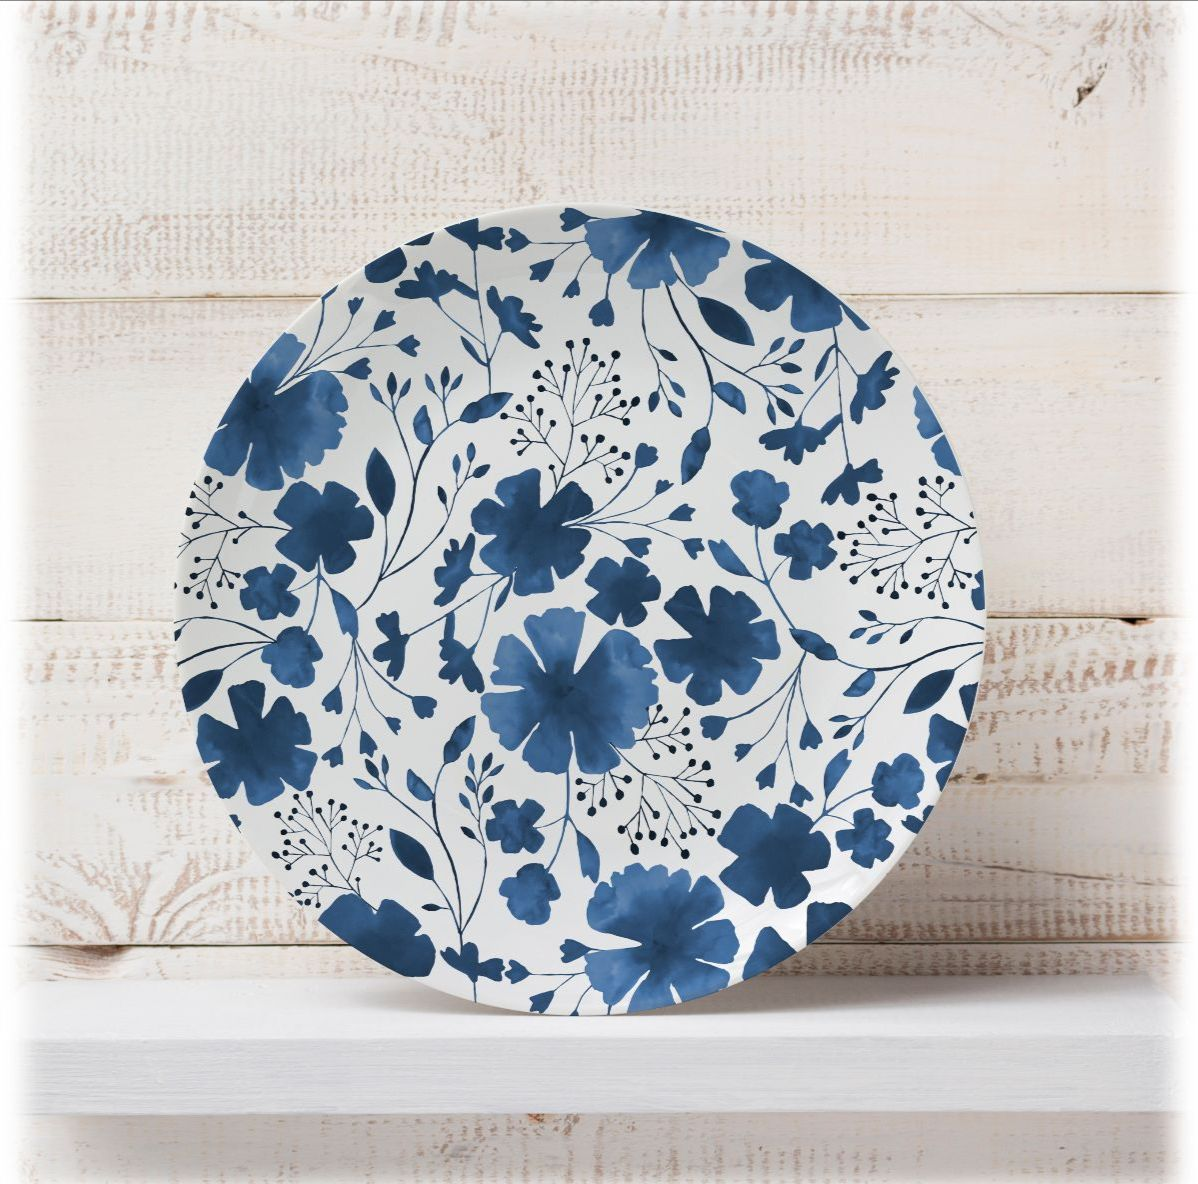 Dizzywonders art on ArtWOW: Blue white floral watercolour pattern – customised plate